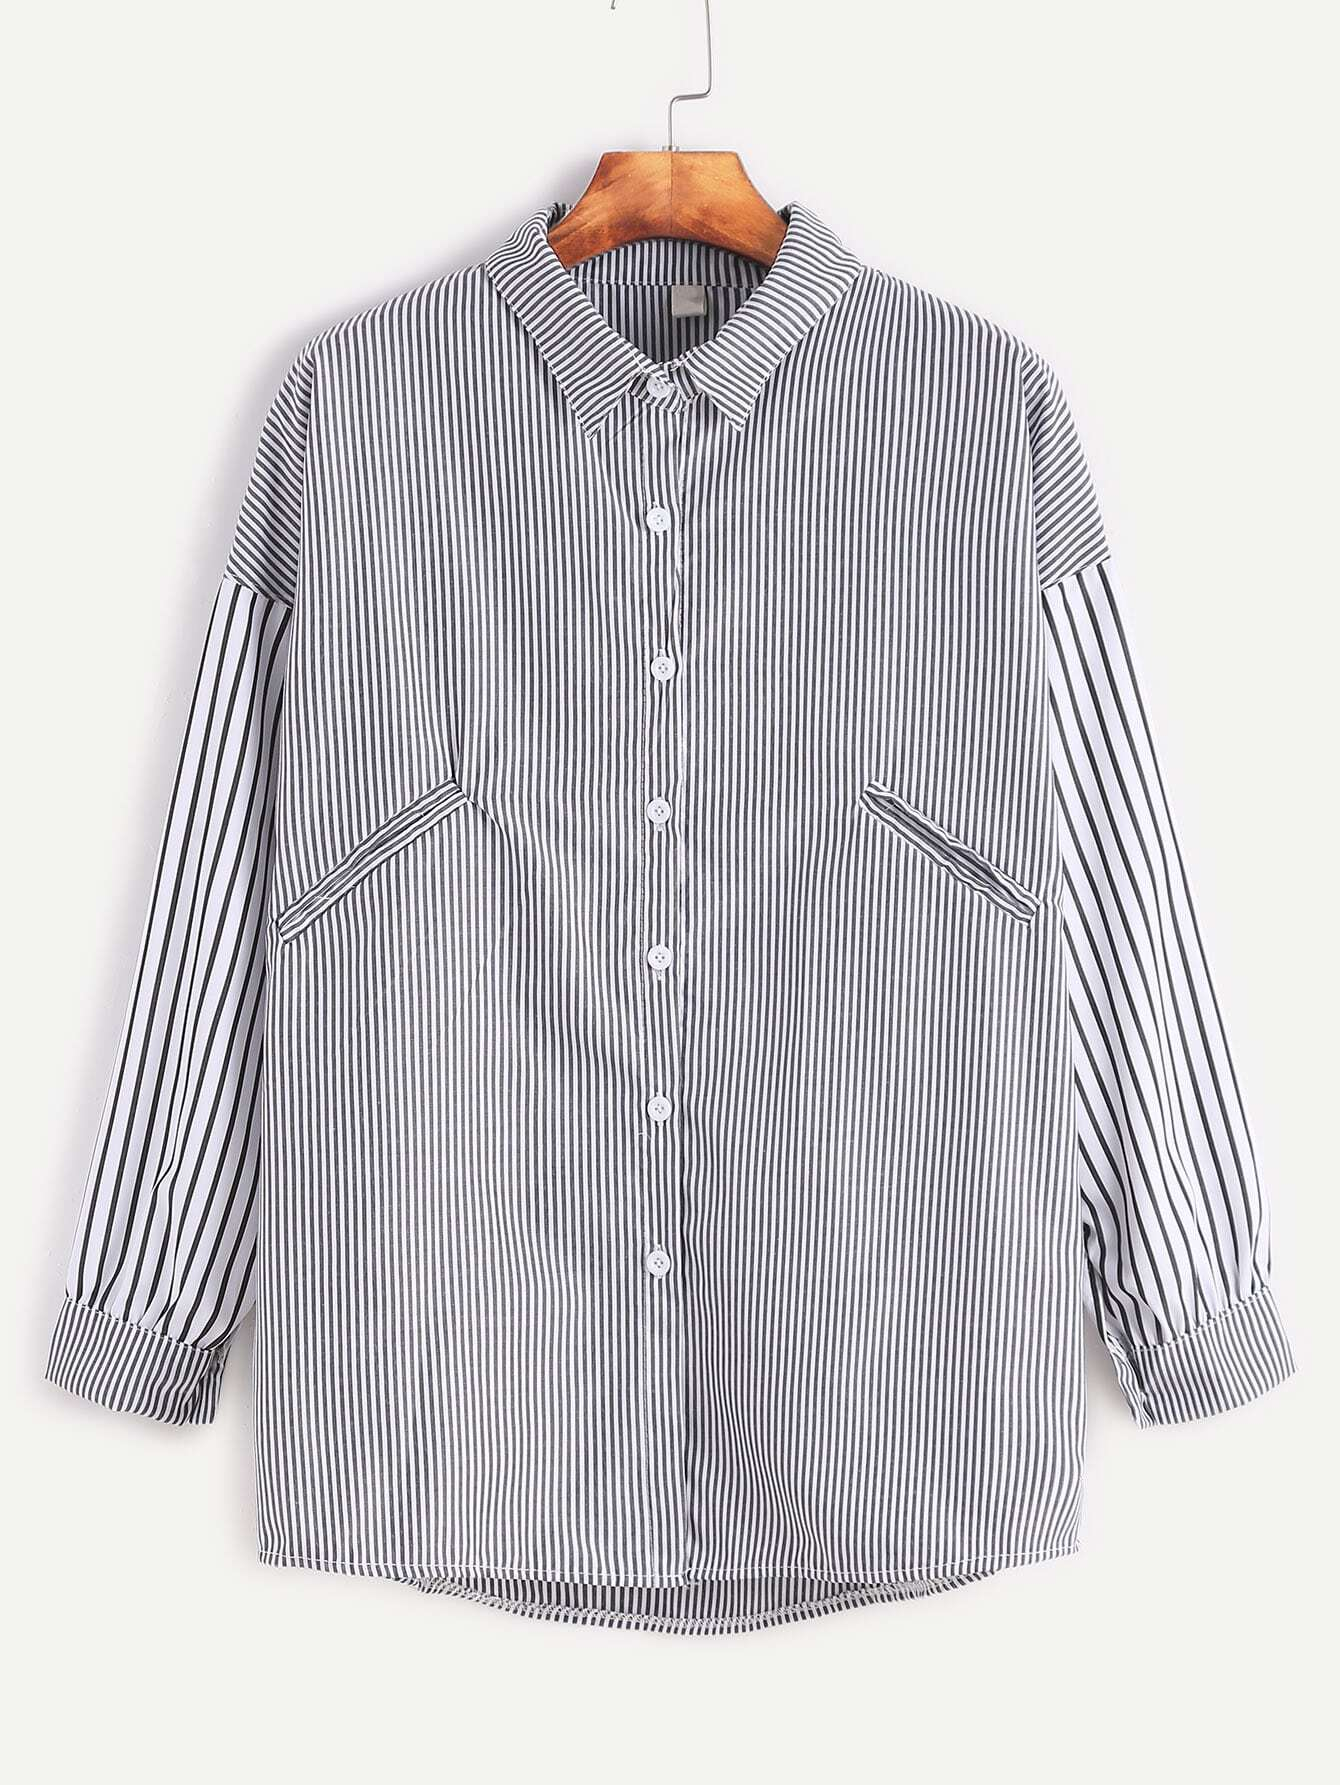 Vertical Striped Dropped Shoulder Seam High Low ShirtVertical Striped Dropped Shoulder Seam High Low Shirt<br><br>color: Black and White<br>size: one-size